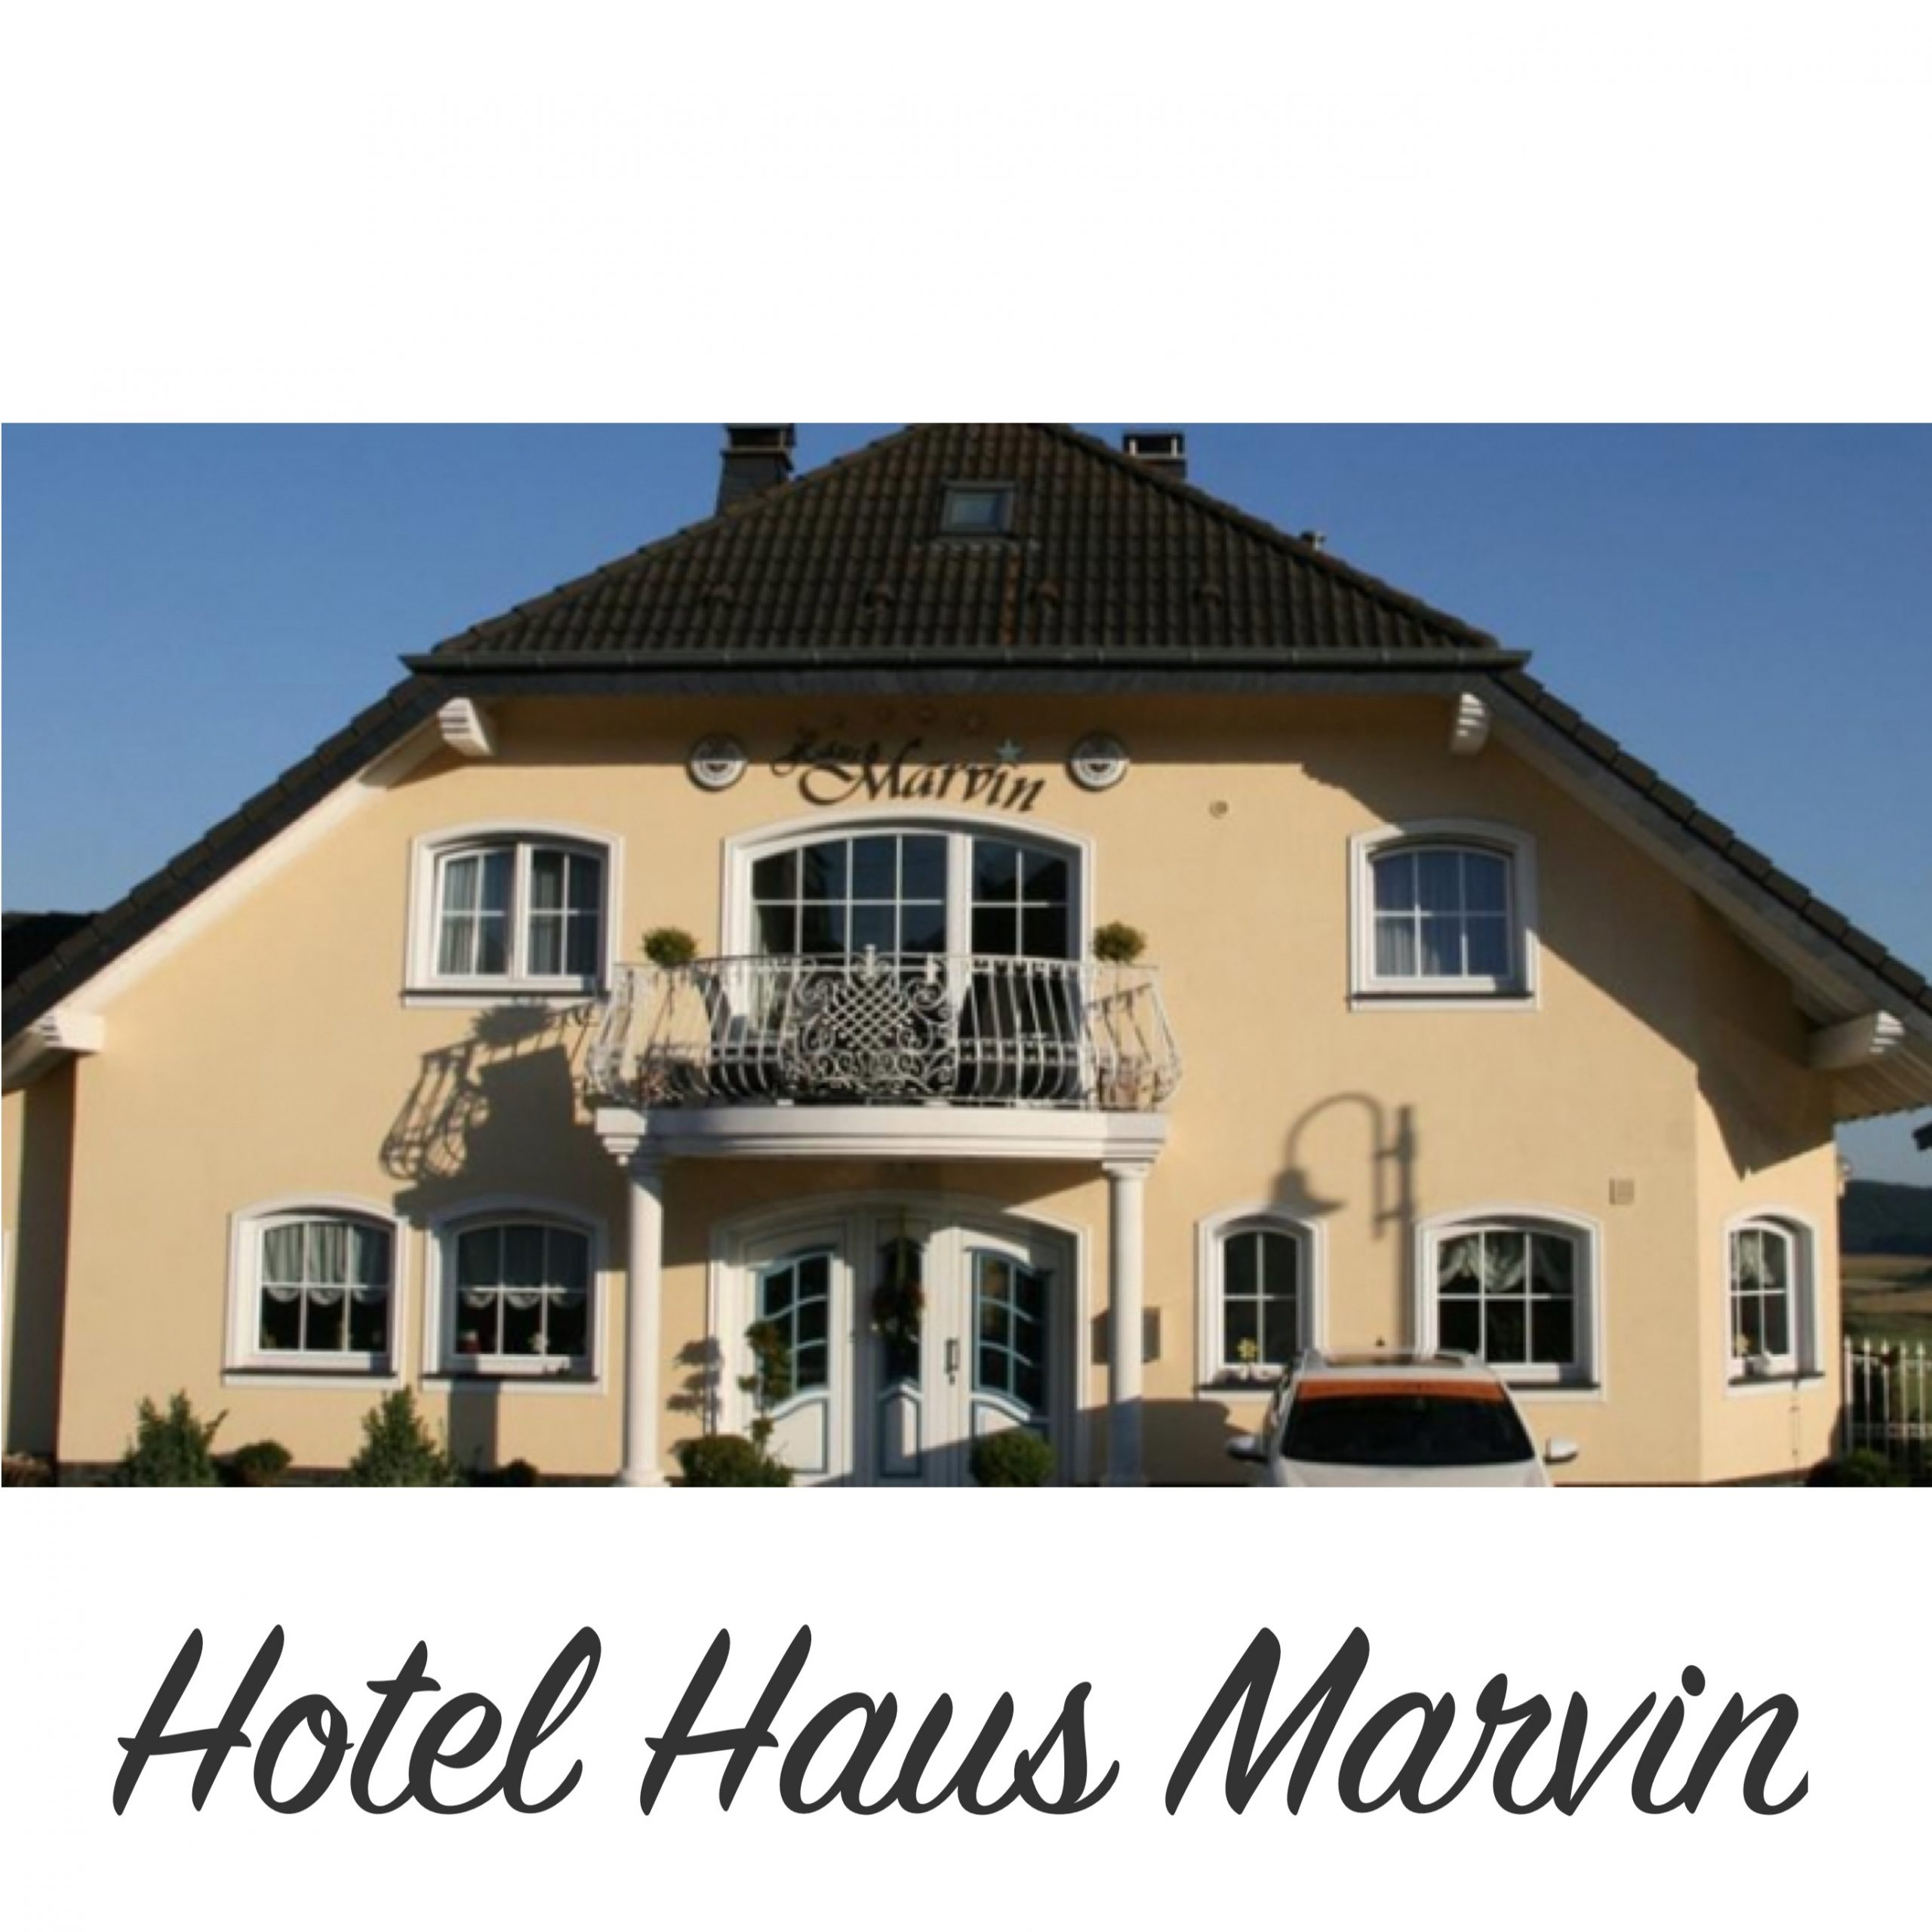 logo hotel haus marvin scaled